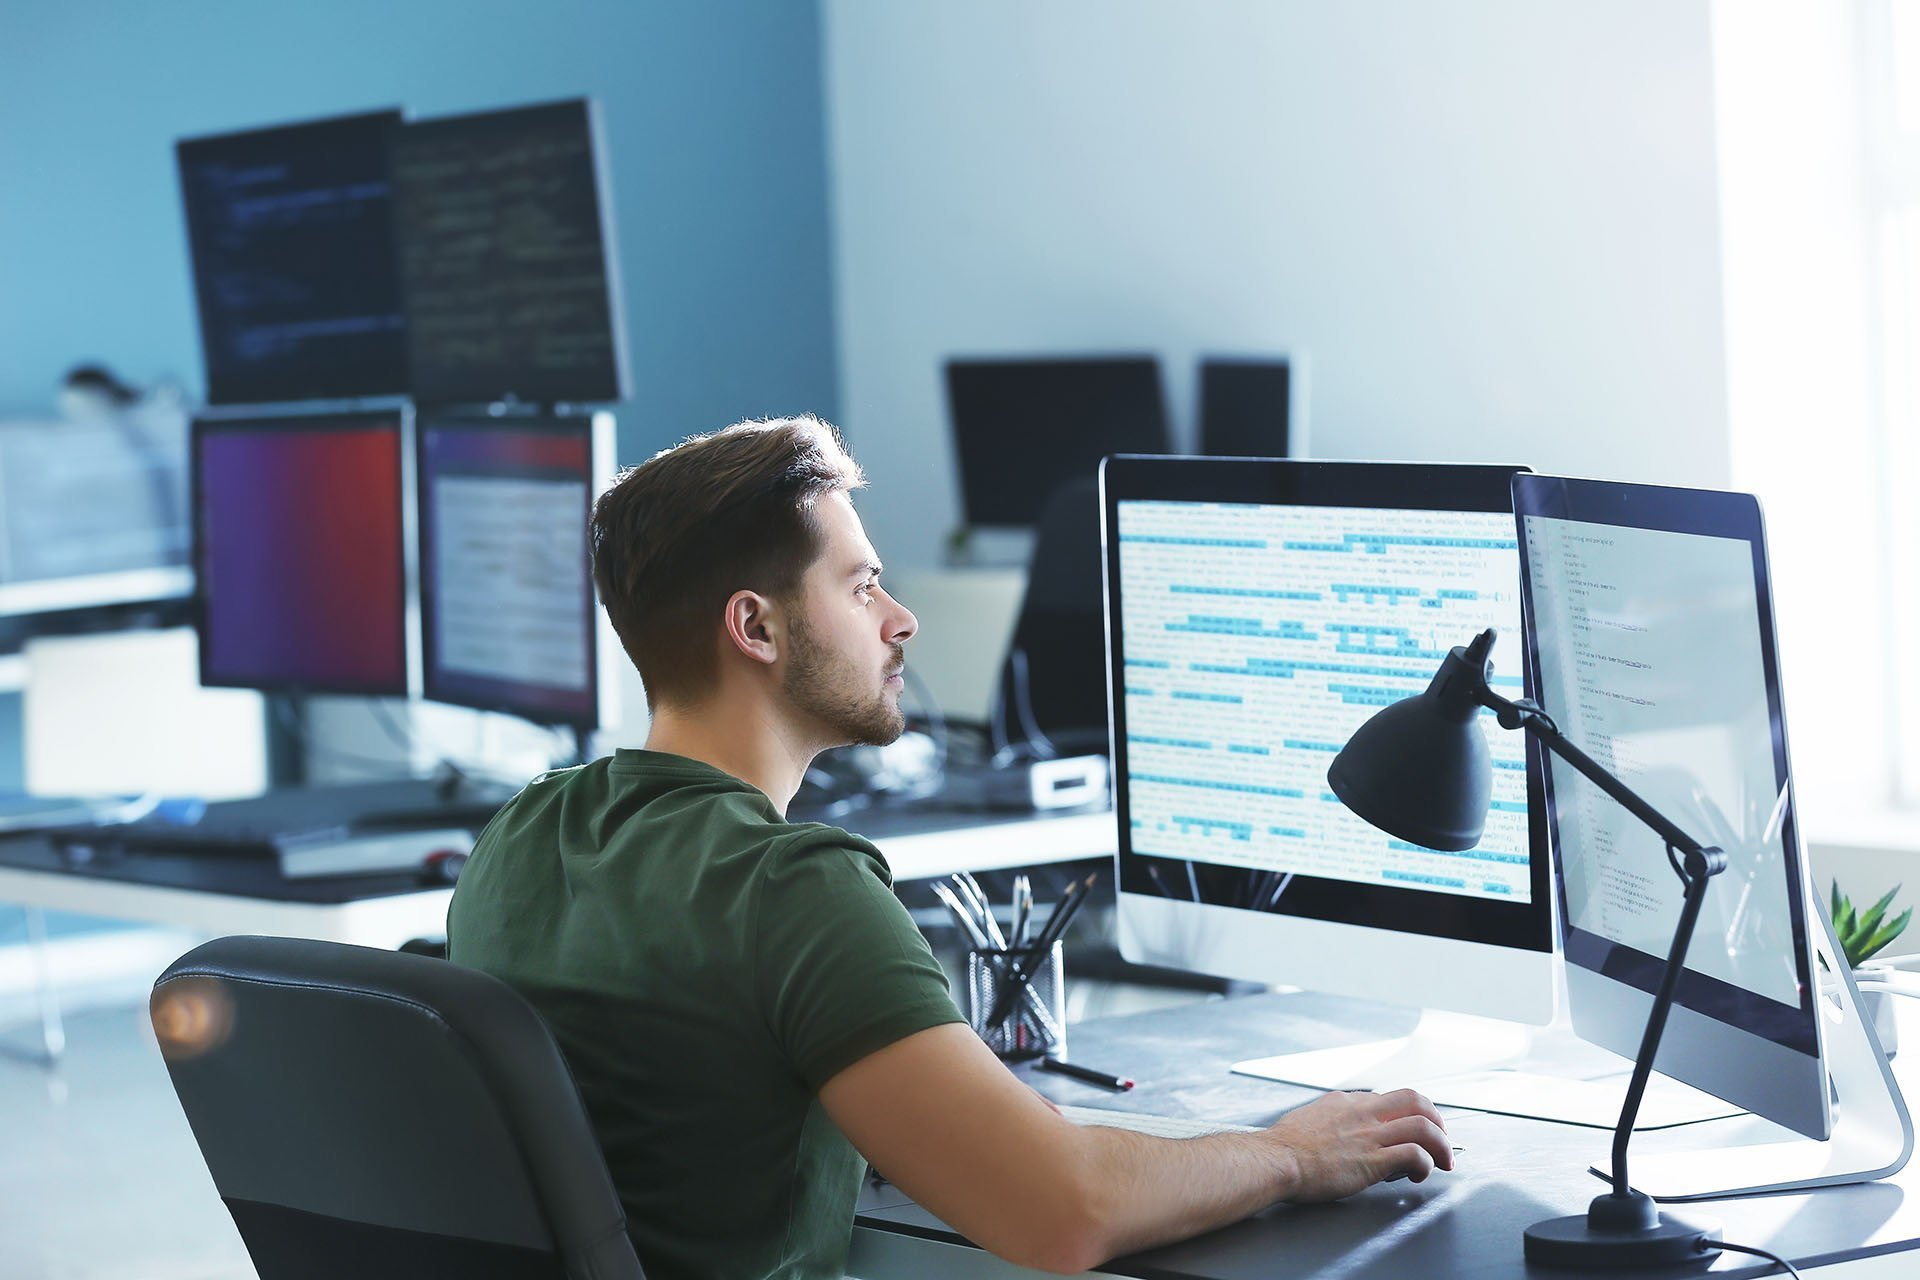 How To Build A Computer Network For Your Small Business